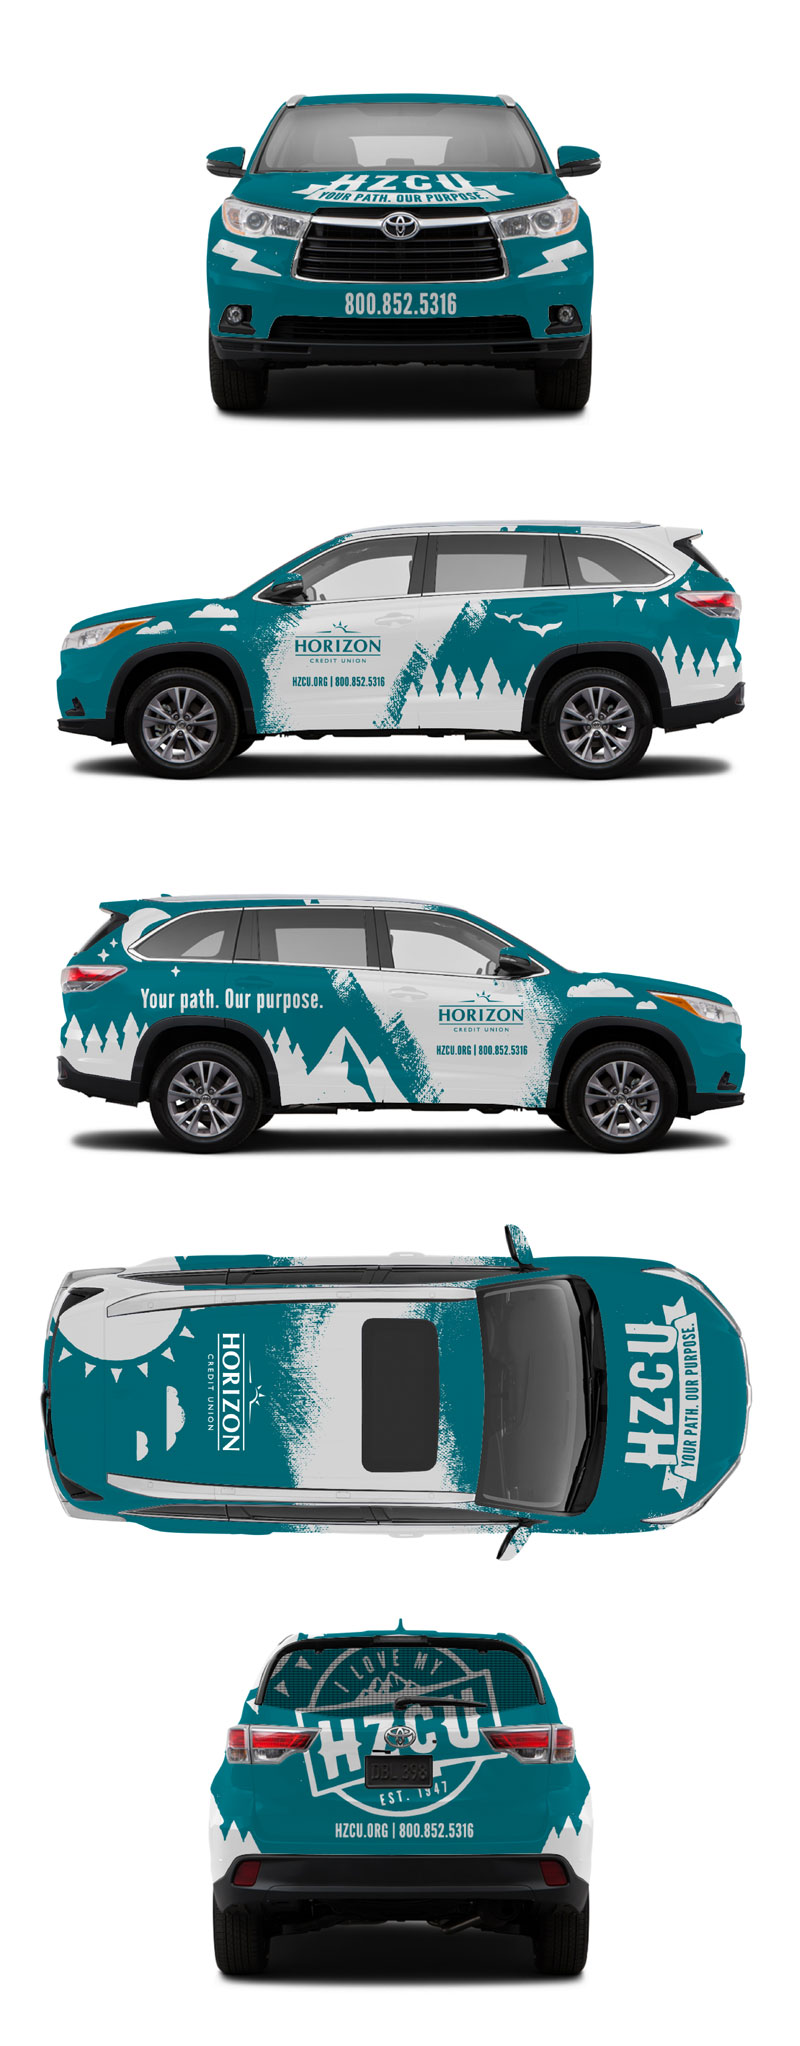 A full wrap was applied to a colored SUV to make its color seem in-line with the rest of the fleet. Brand icons and imagery were incorporated into the design.